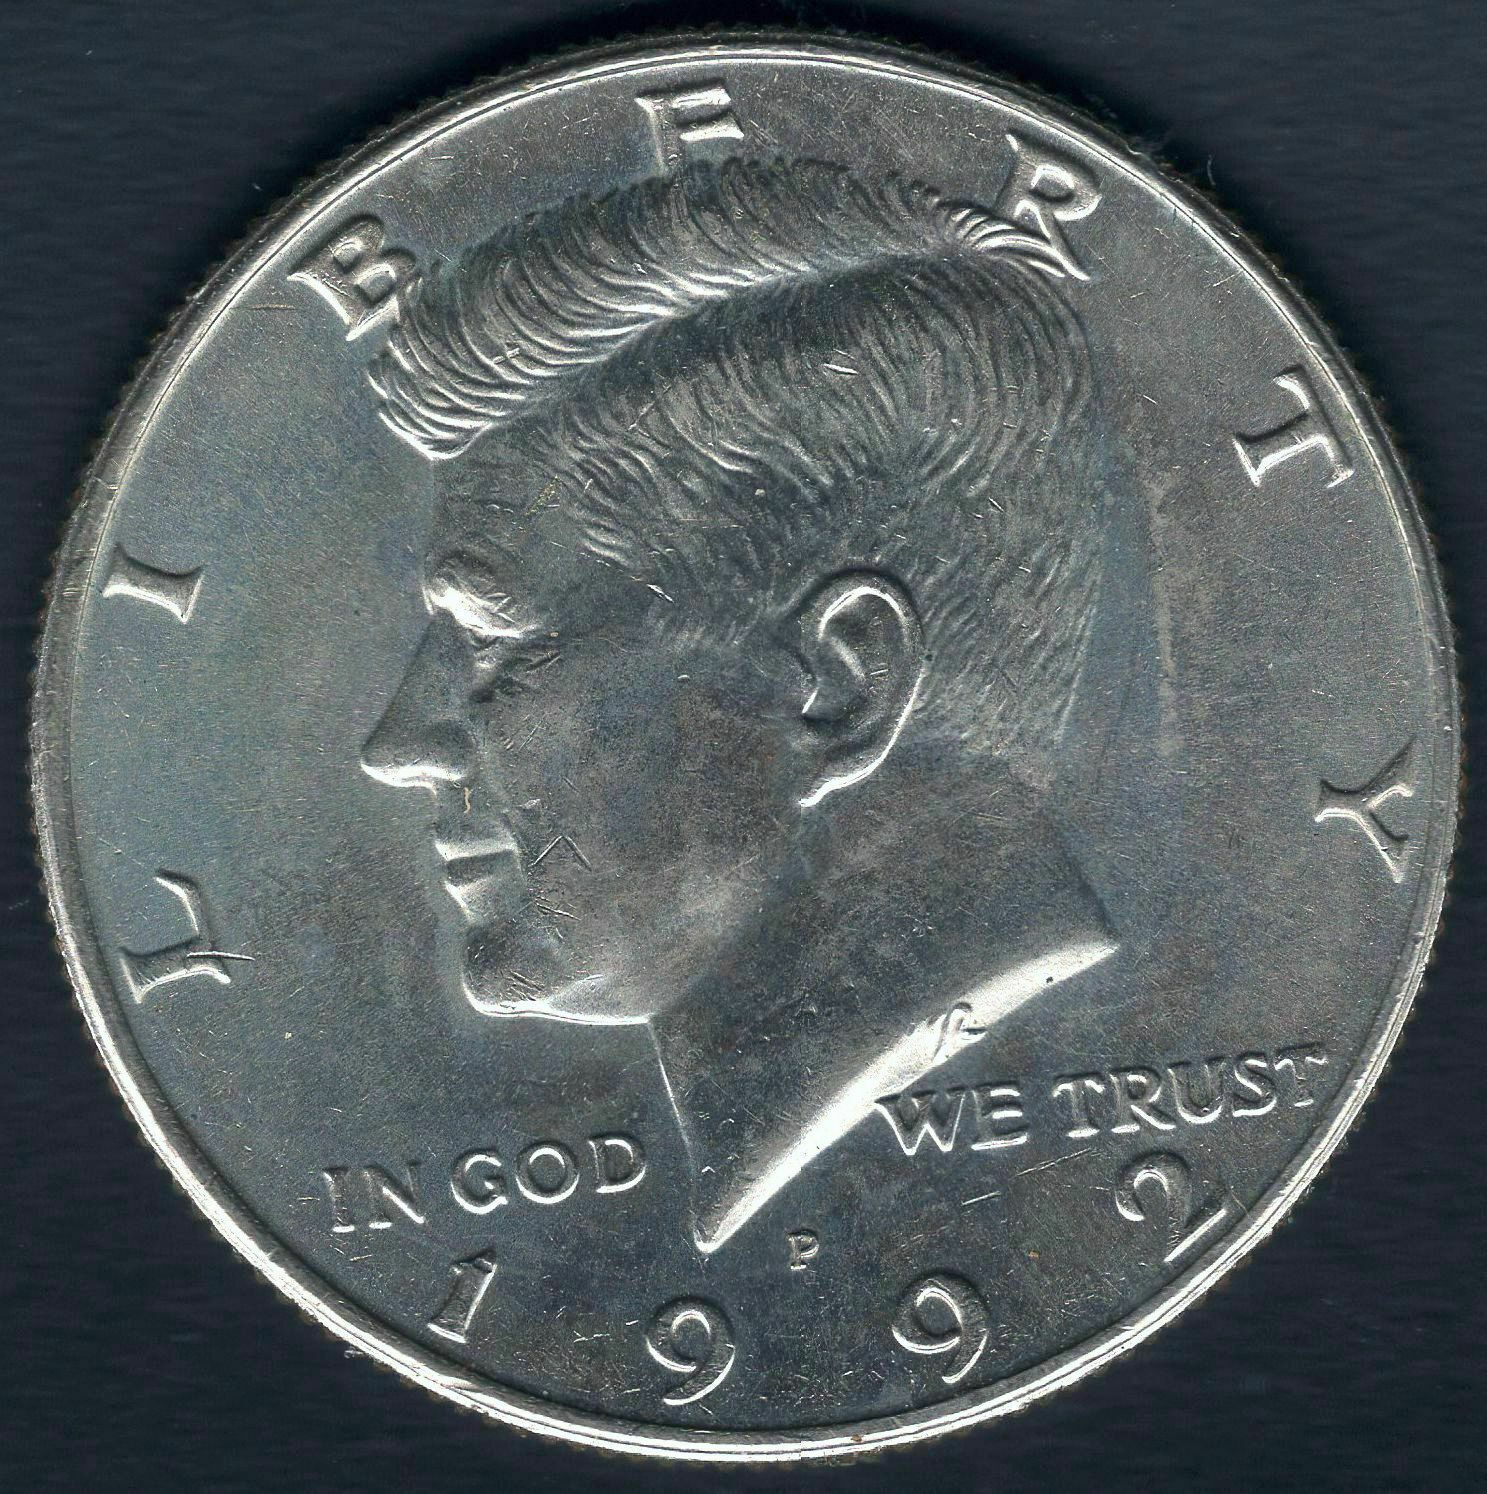 1992 P Kennedy Half Dollar Uncirculated Lovely Coin - HI RES SCANS - $3.00